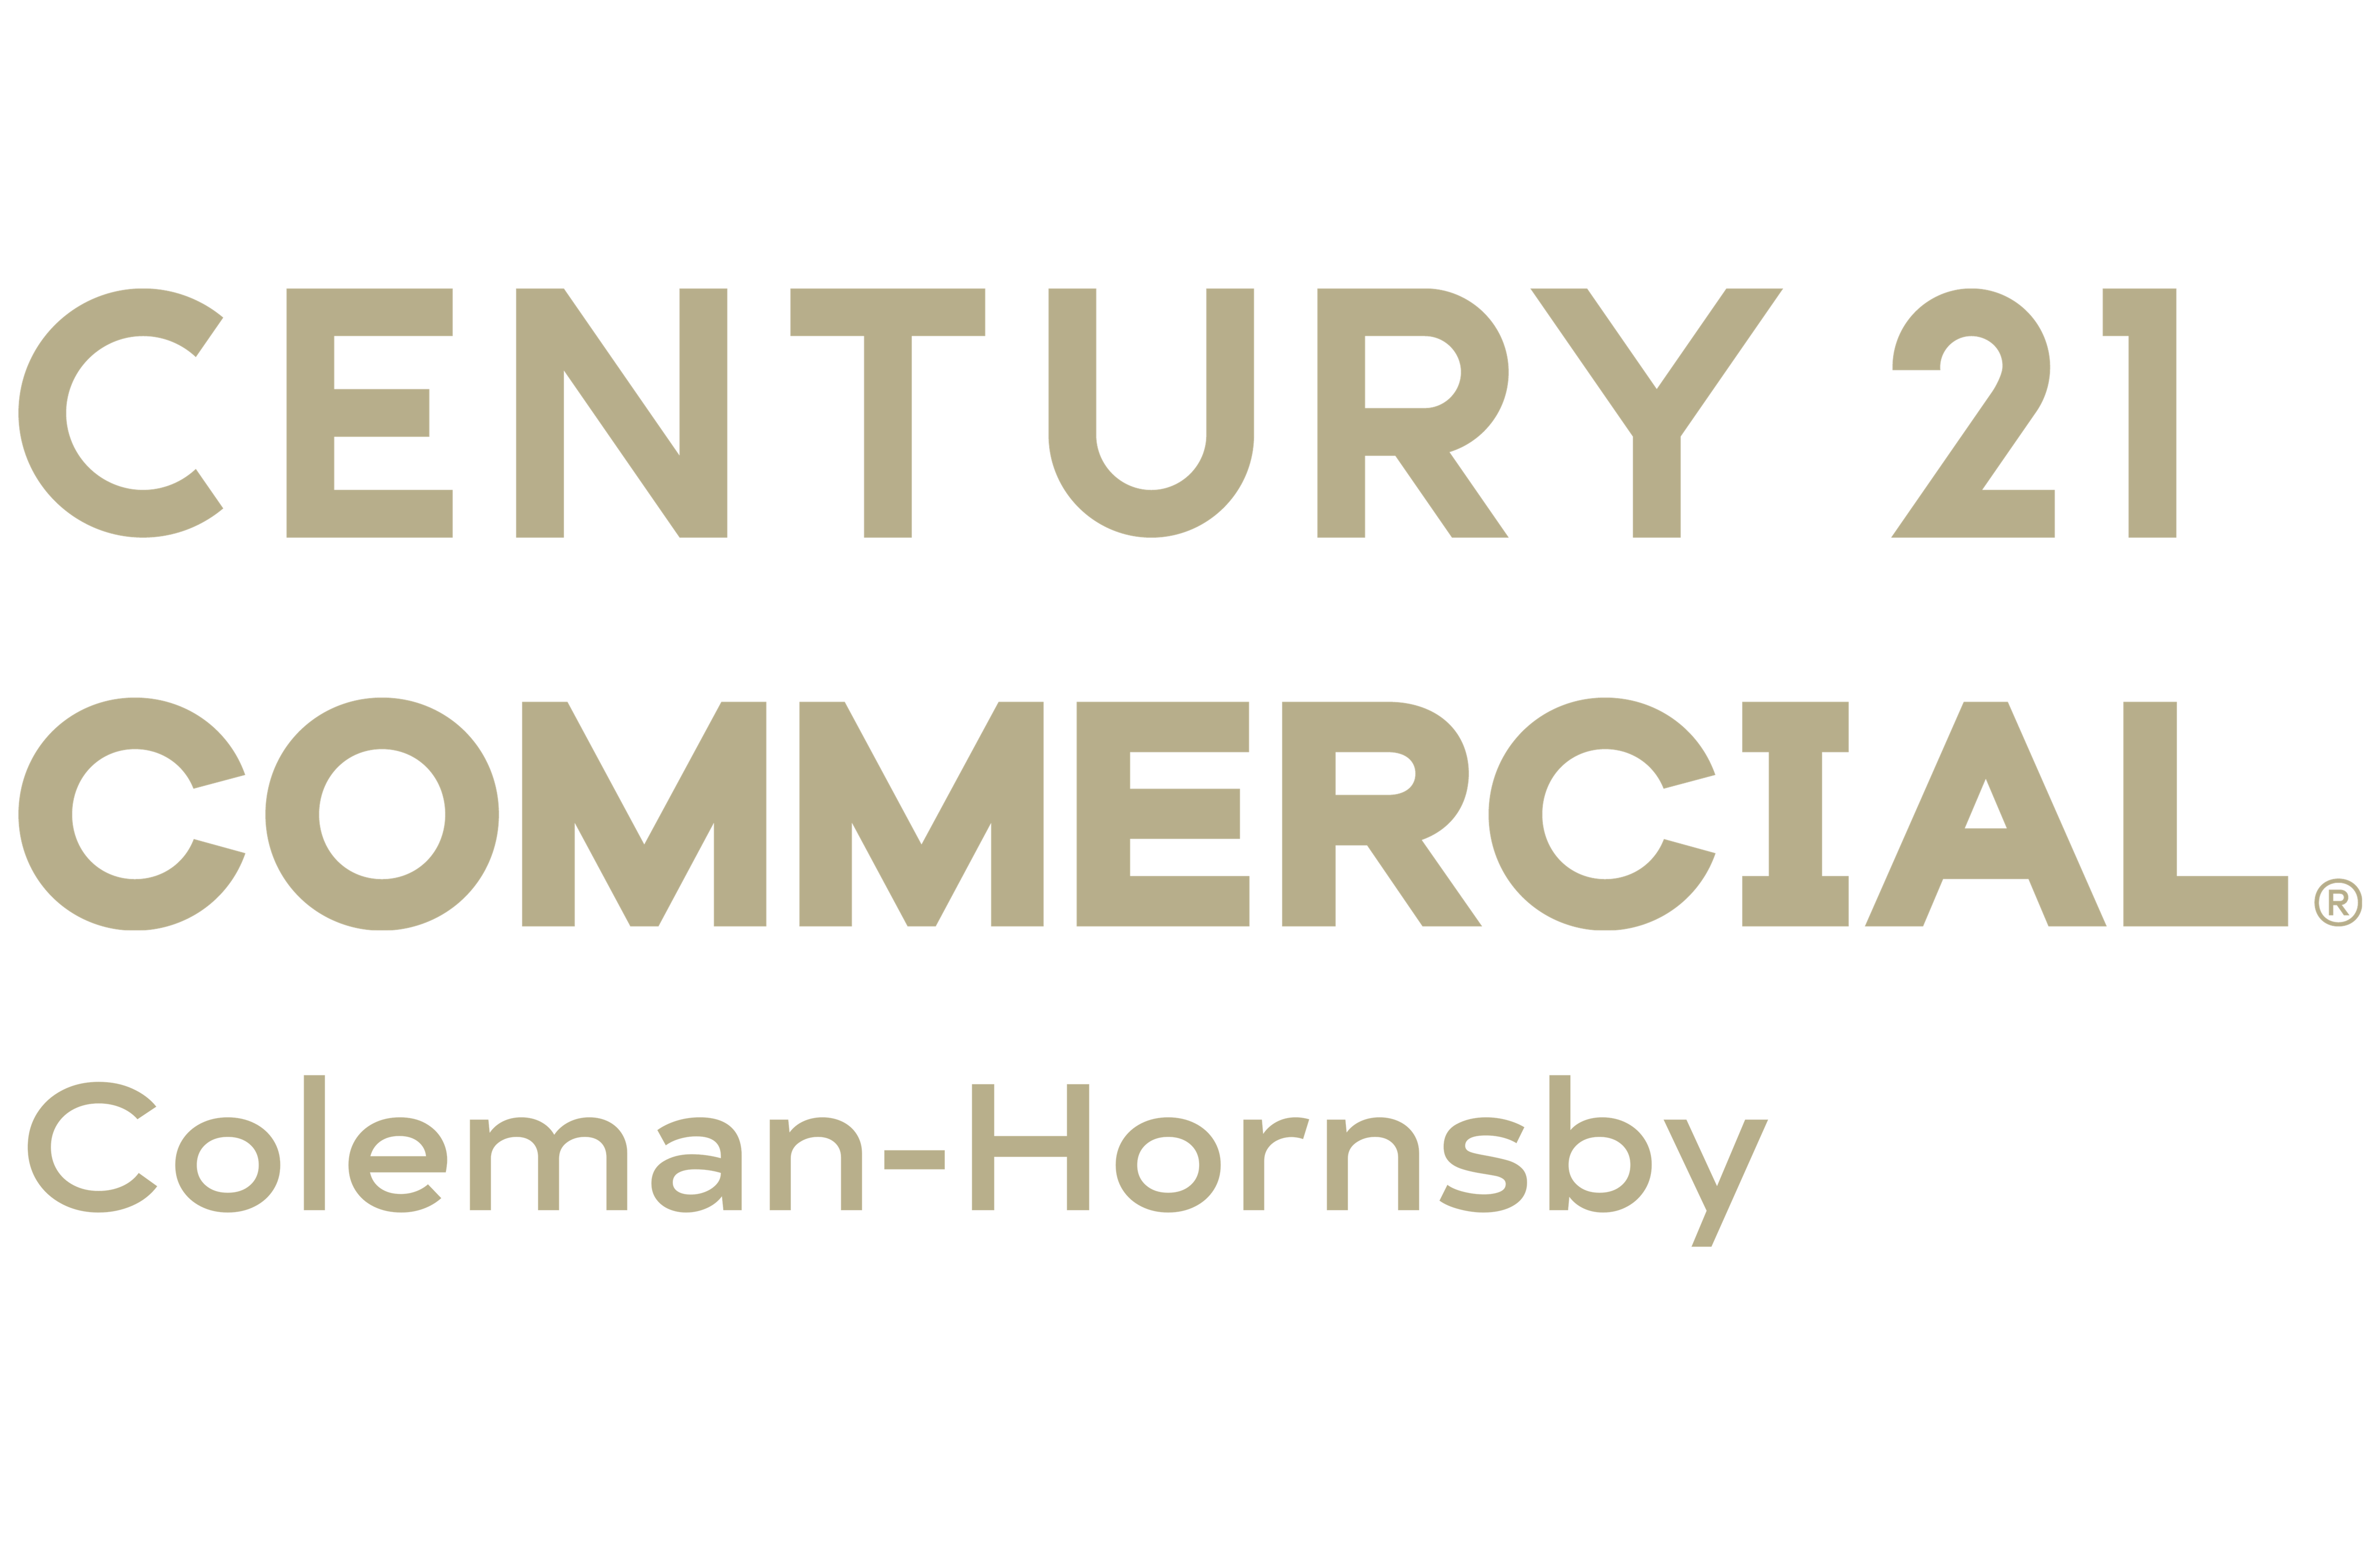 CENTURY 21 Coleman-Hornsby